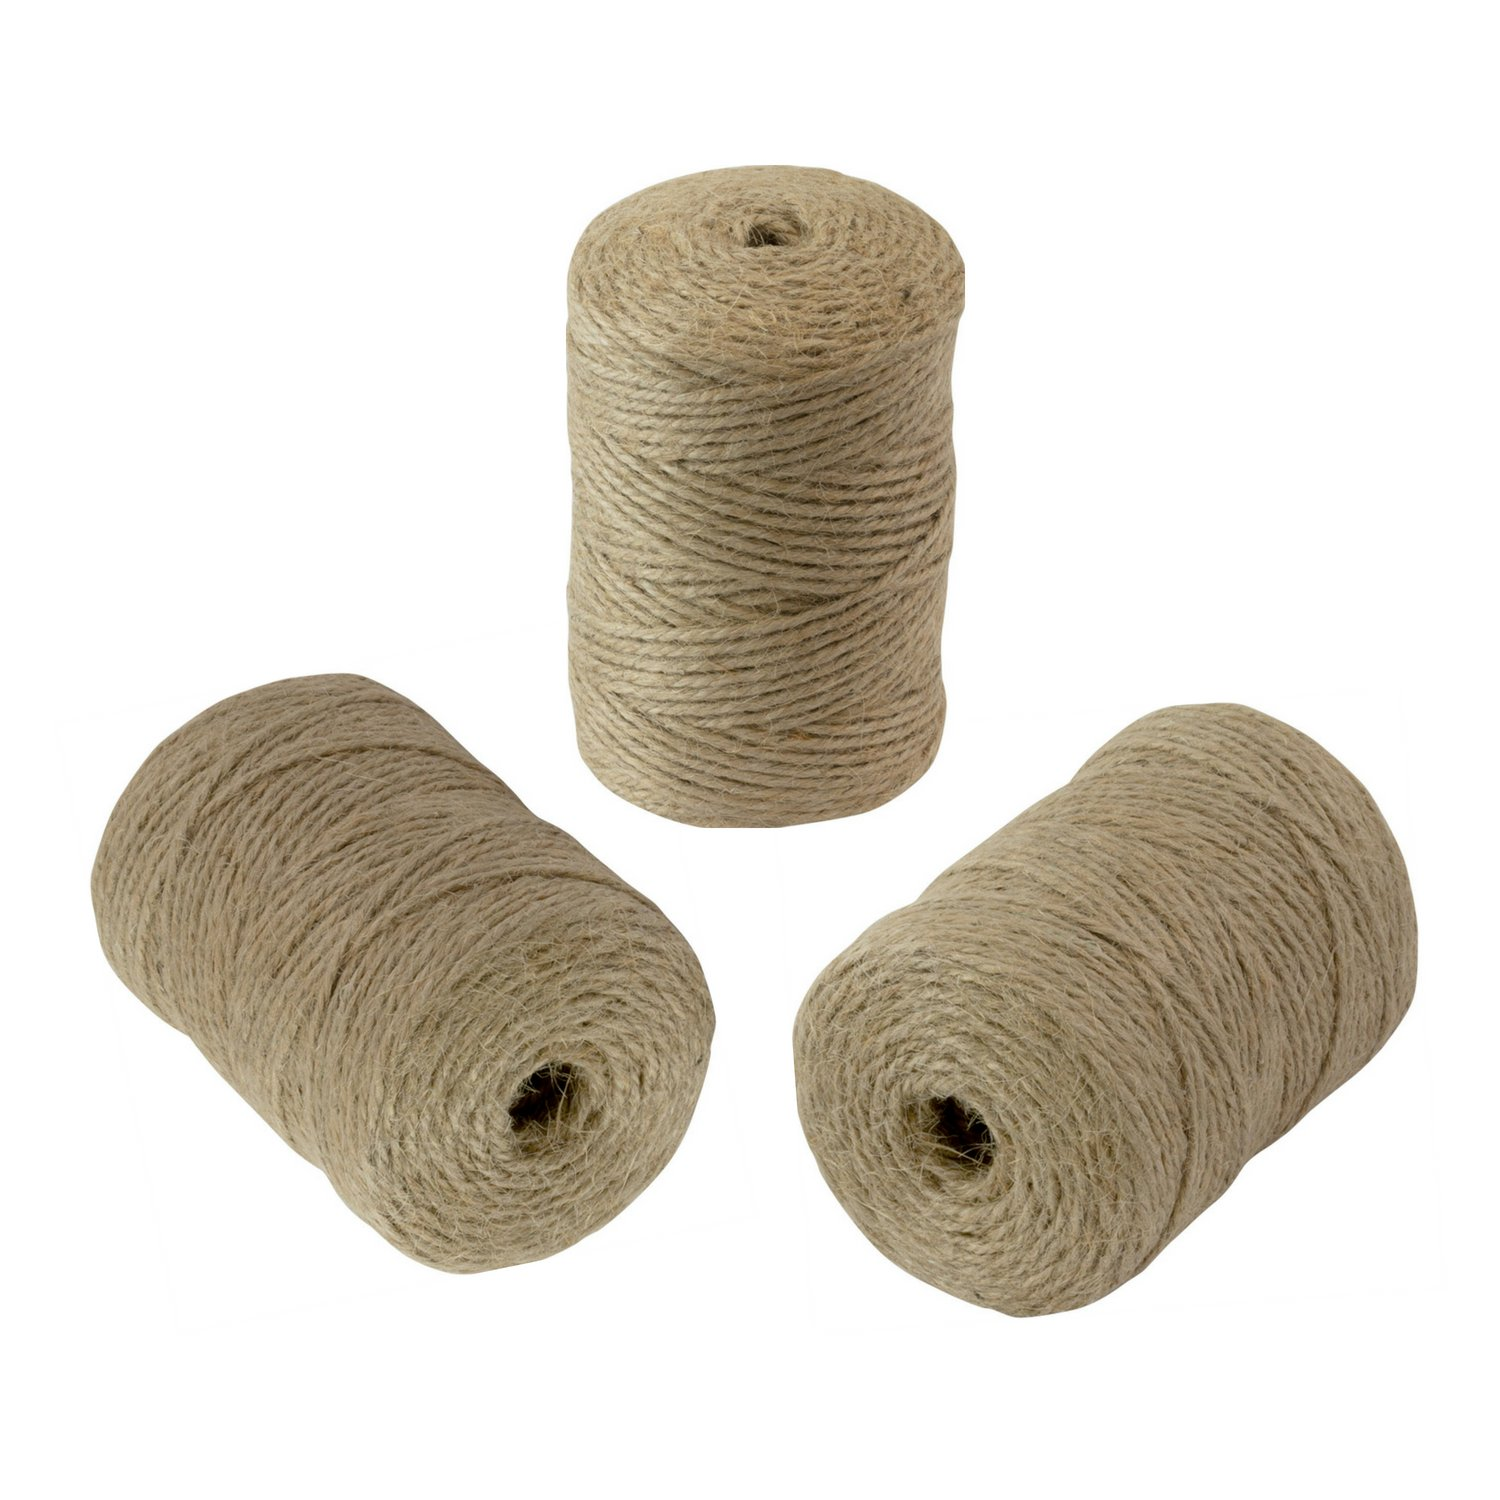 Houseables Jute Twine String, 1,980 Feet, 3 Rolls (660'/Roll), 2mm, 3 Ply, Brown, Burlap Twill Ribbon, Natural Hemp, Thin Garden Rope, Sisal Decorative Cord, for DIY Craft, Packing, Gifts, Wrapping